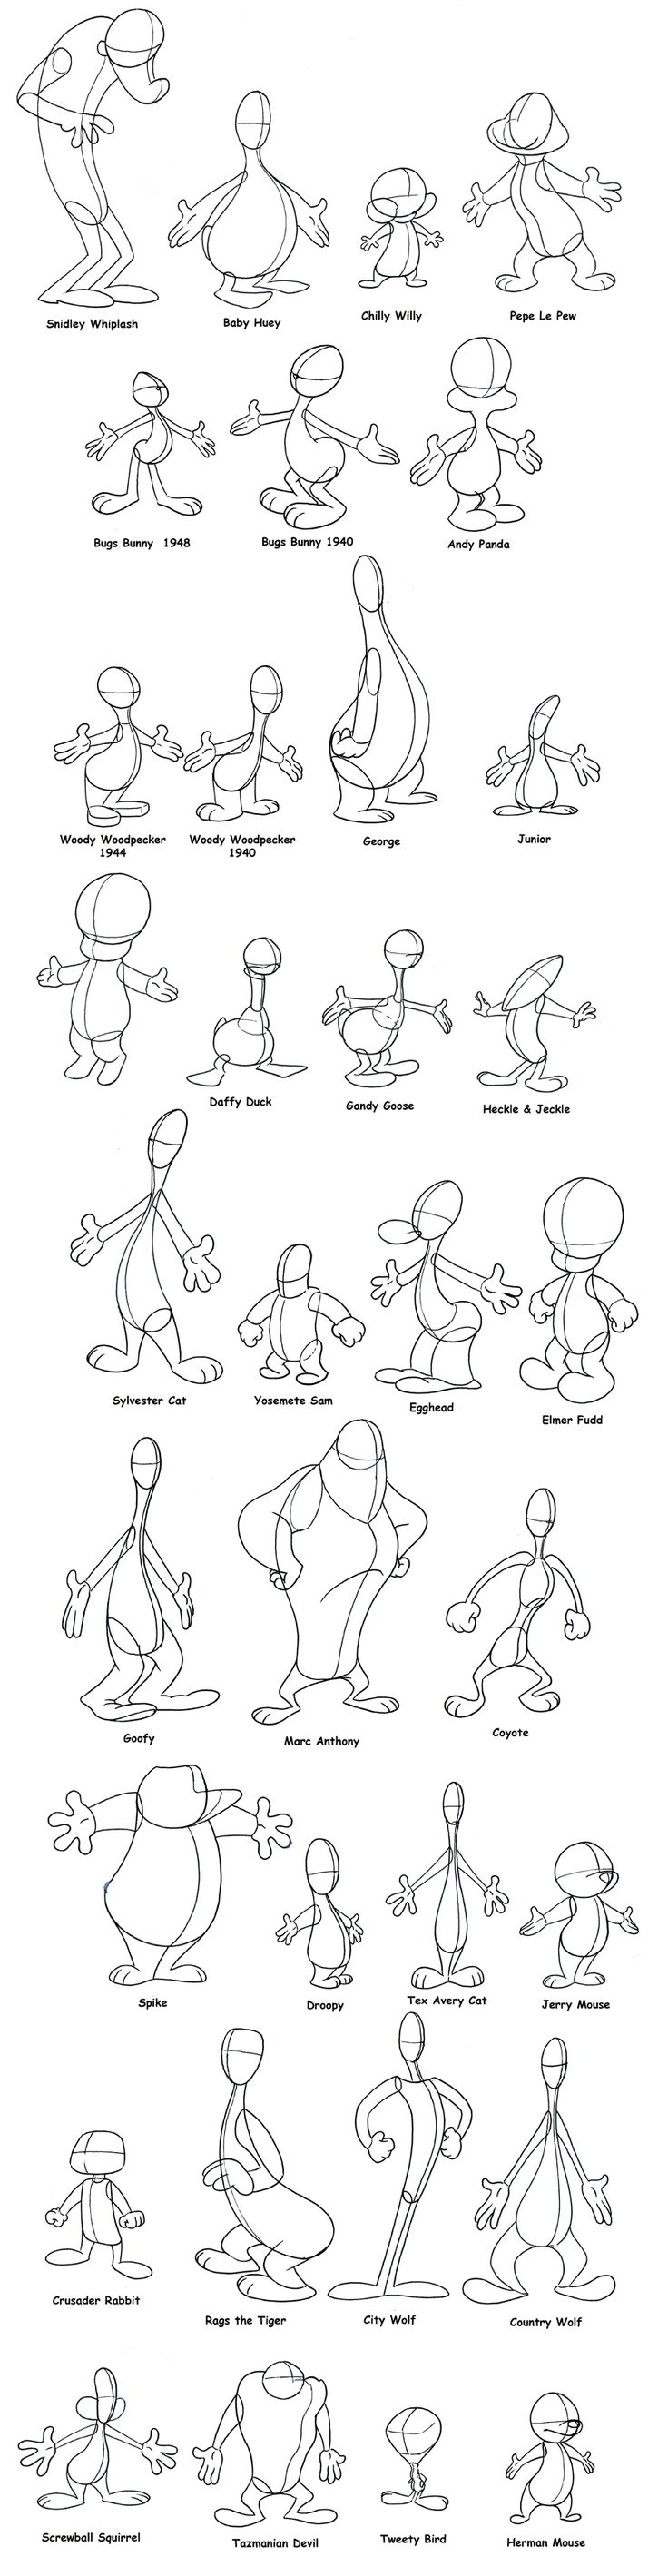 Characters basics ✤ || CHARACTER DESIGN REFERENCES | キャラクターデザイン • Find more at https://www.facebook.com/CharacterDesignReferences if you're looking for: #lineart #art #character #design #illustration #expressions #best #animation #drawing #archive #library #reference #anatomy #traditional #sketch #development #artist #pose #settei #gestures #how #to #tutorial #comics #conceptart #modelsheet #cartoon || ✤